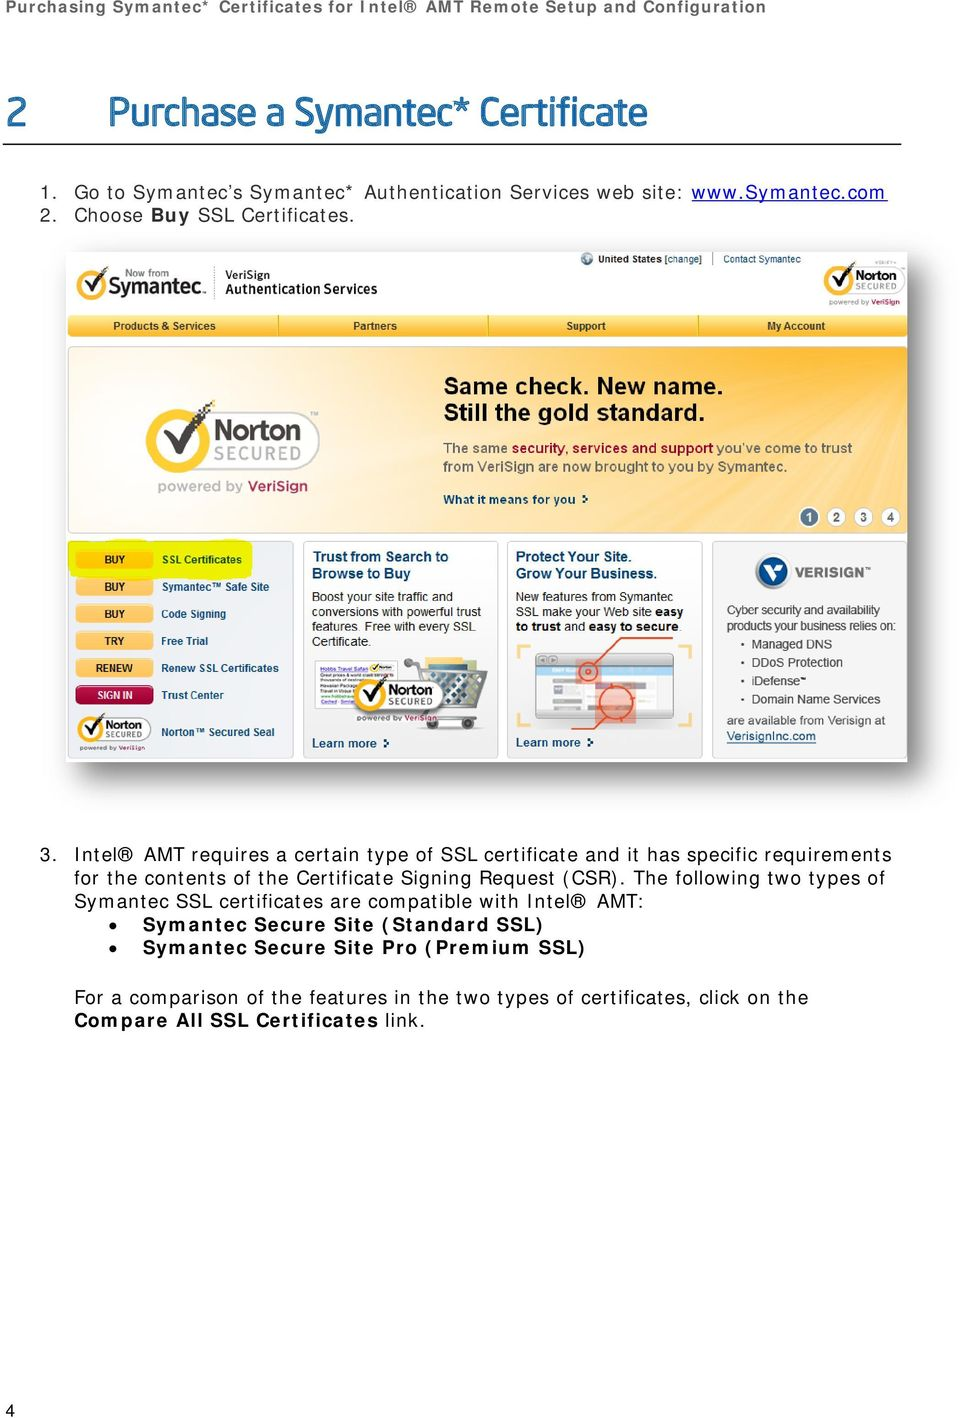 Intel vpro Technology  How To Purchase and Install Symantec